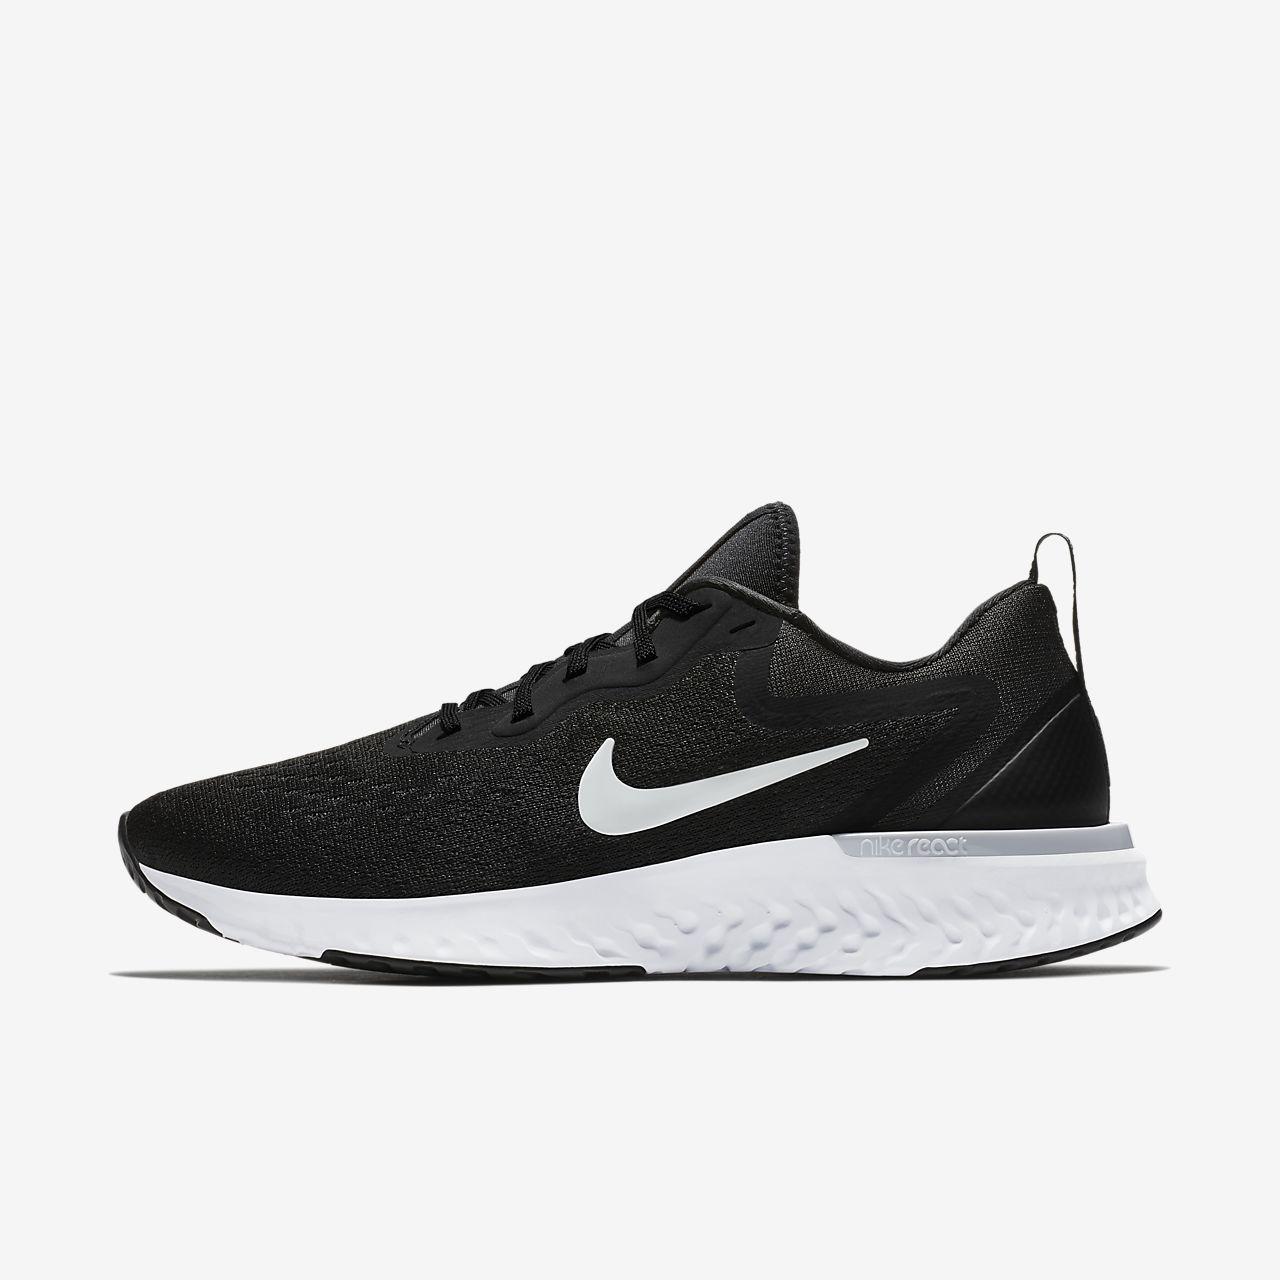 Nike Wmns Odyssey React Women Running Shoes Sneakers Trainers Pick 1